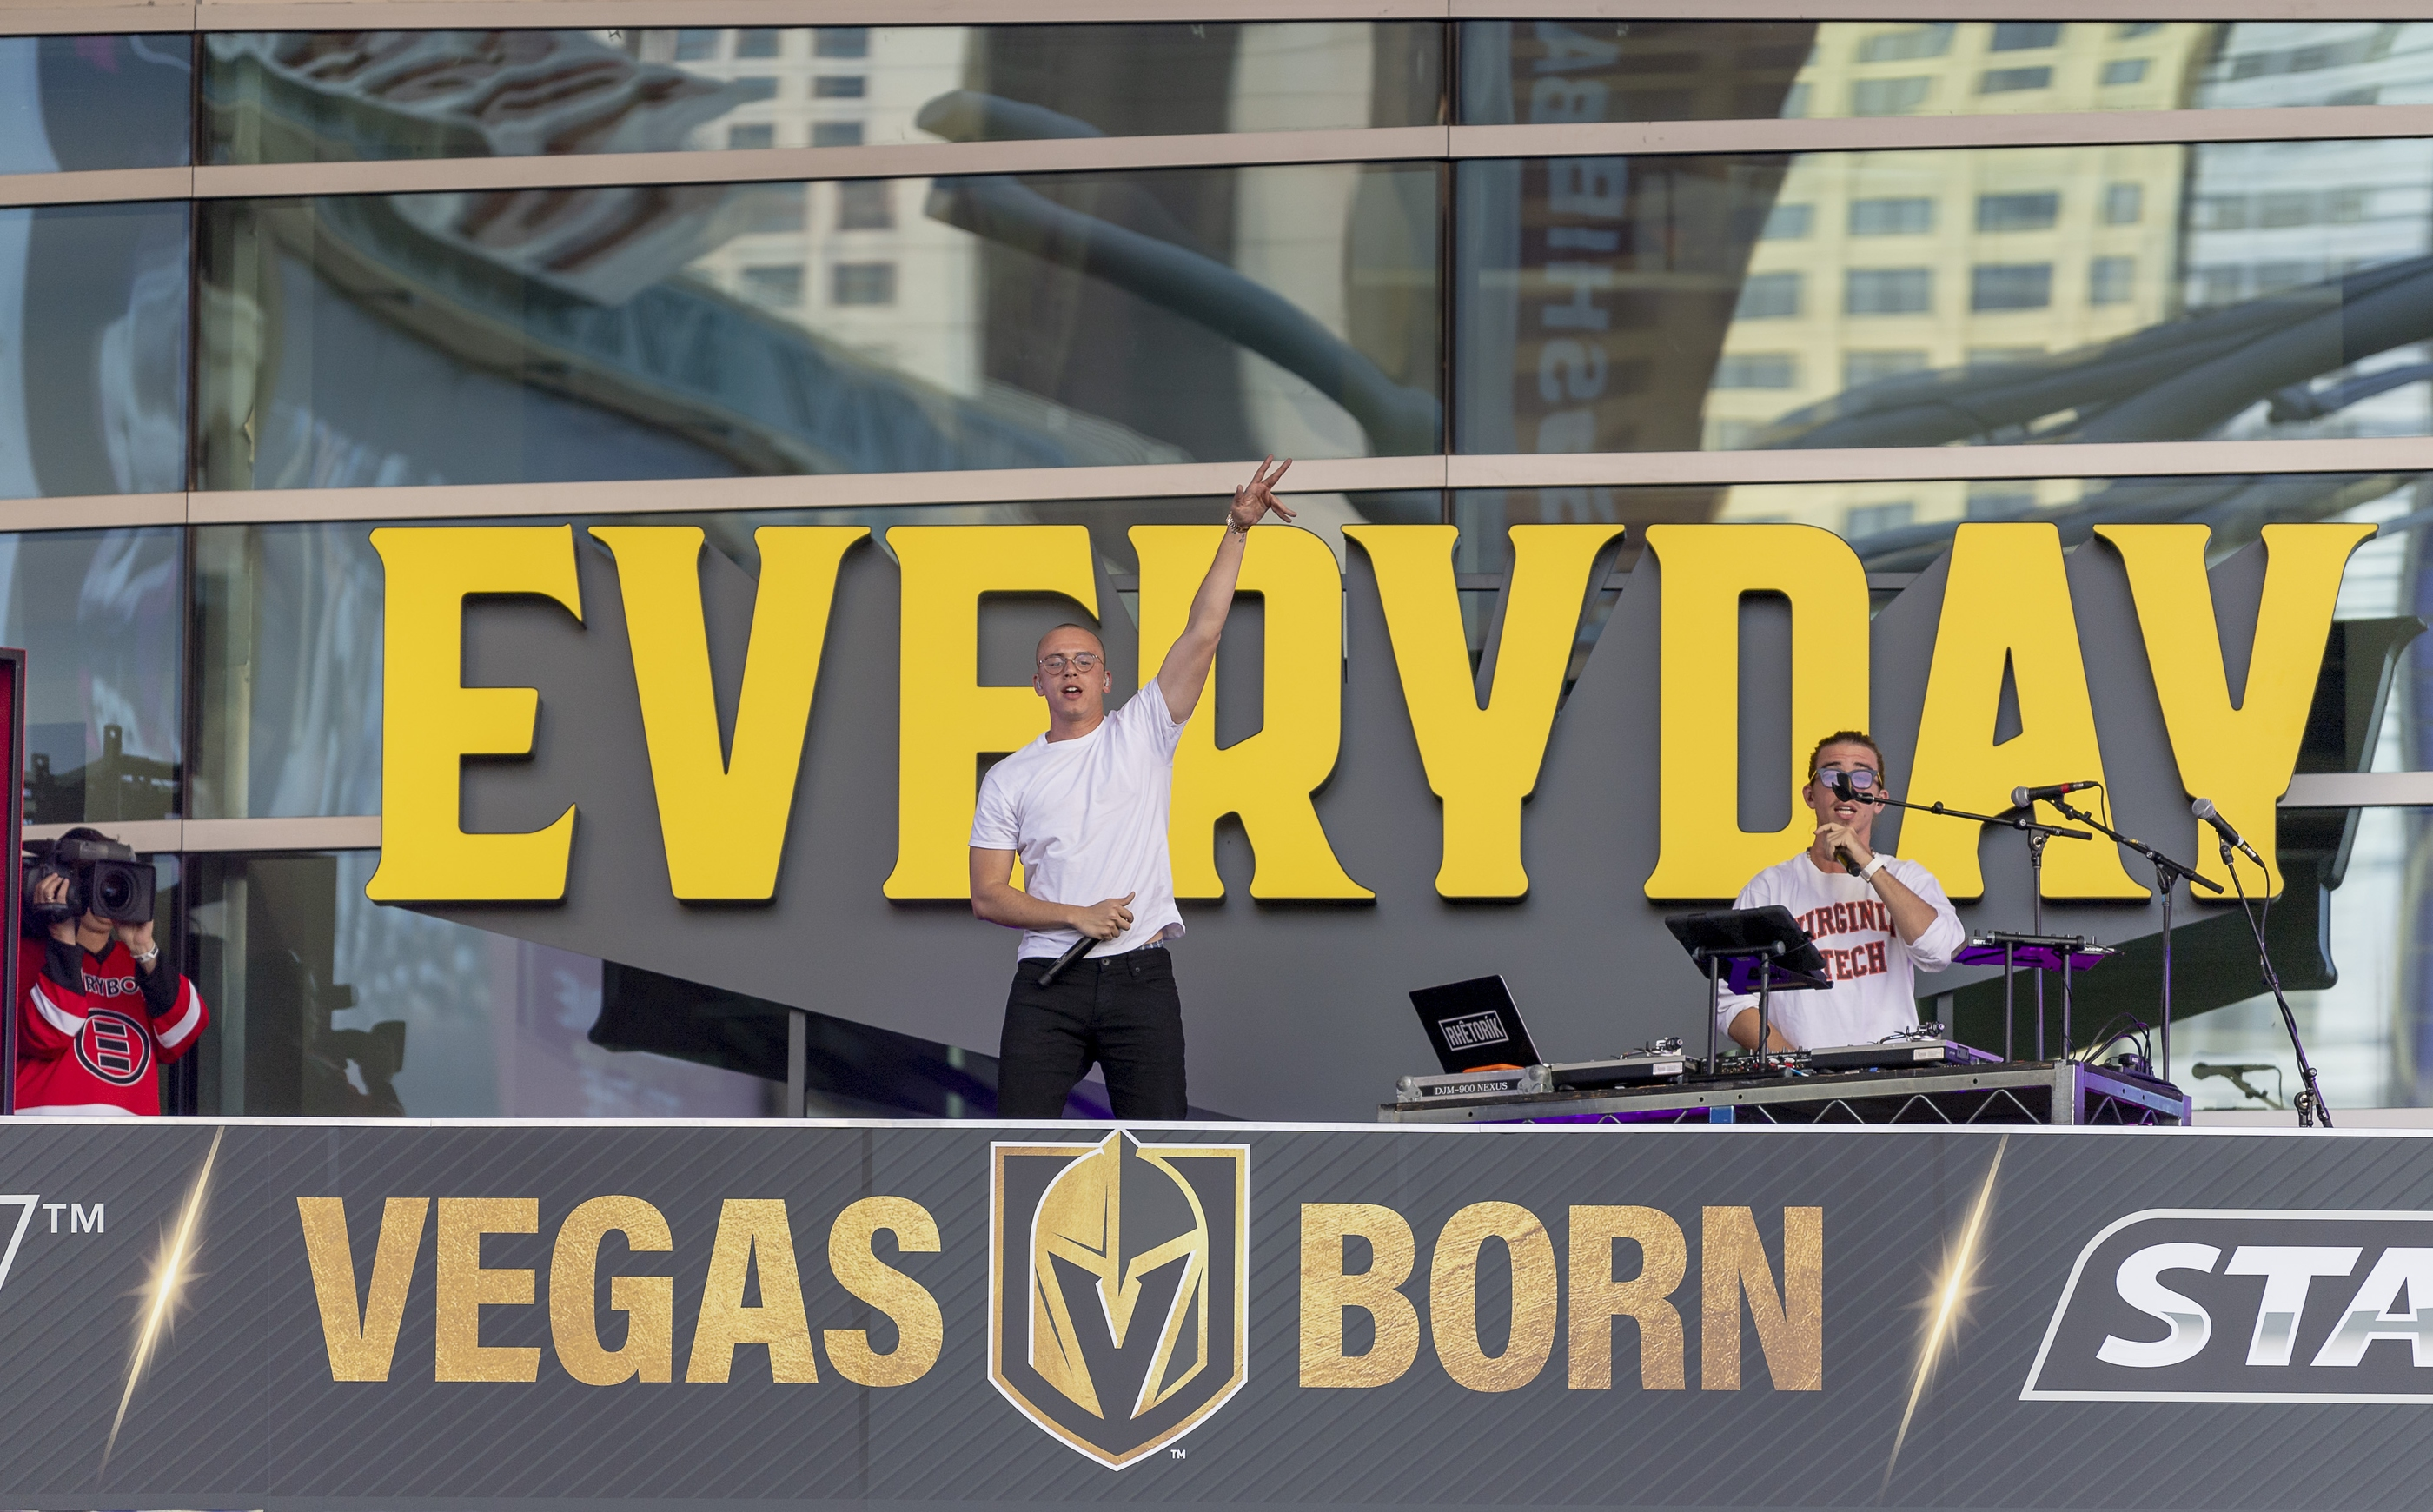 Rapper Logic, left, along with his DJ Rhetoric perform for the crowd in the pre-game celebration at Toshiba Plaza as the Vegas Golden Knights prepare to meet the Los Angeles Kings in the first quarterfinal game of the NHL Stanley Cup Playoffs at T-Mobile Arena in Las Vegas on Wednesday, April 11, 2018.  CREDIT: Mark Damon/Las Vegas News Bureau